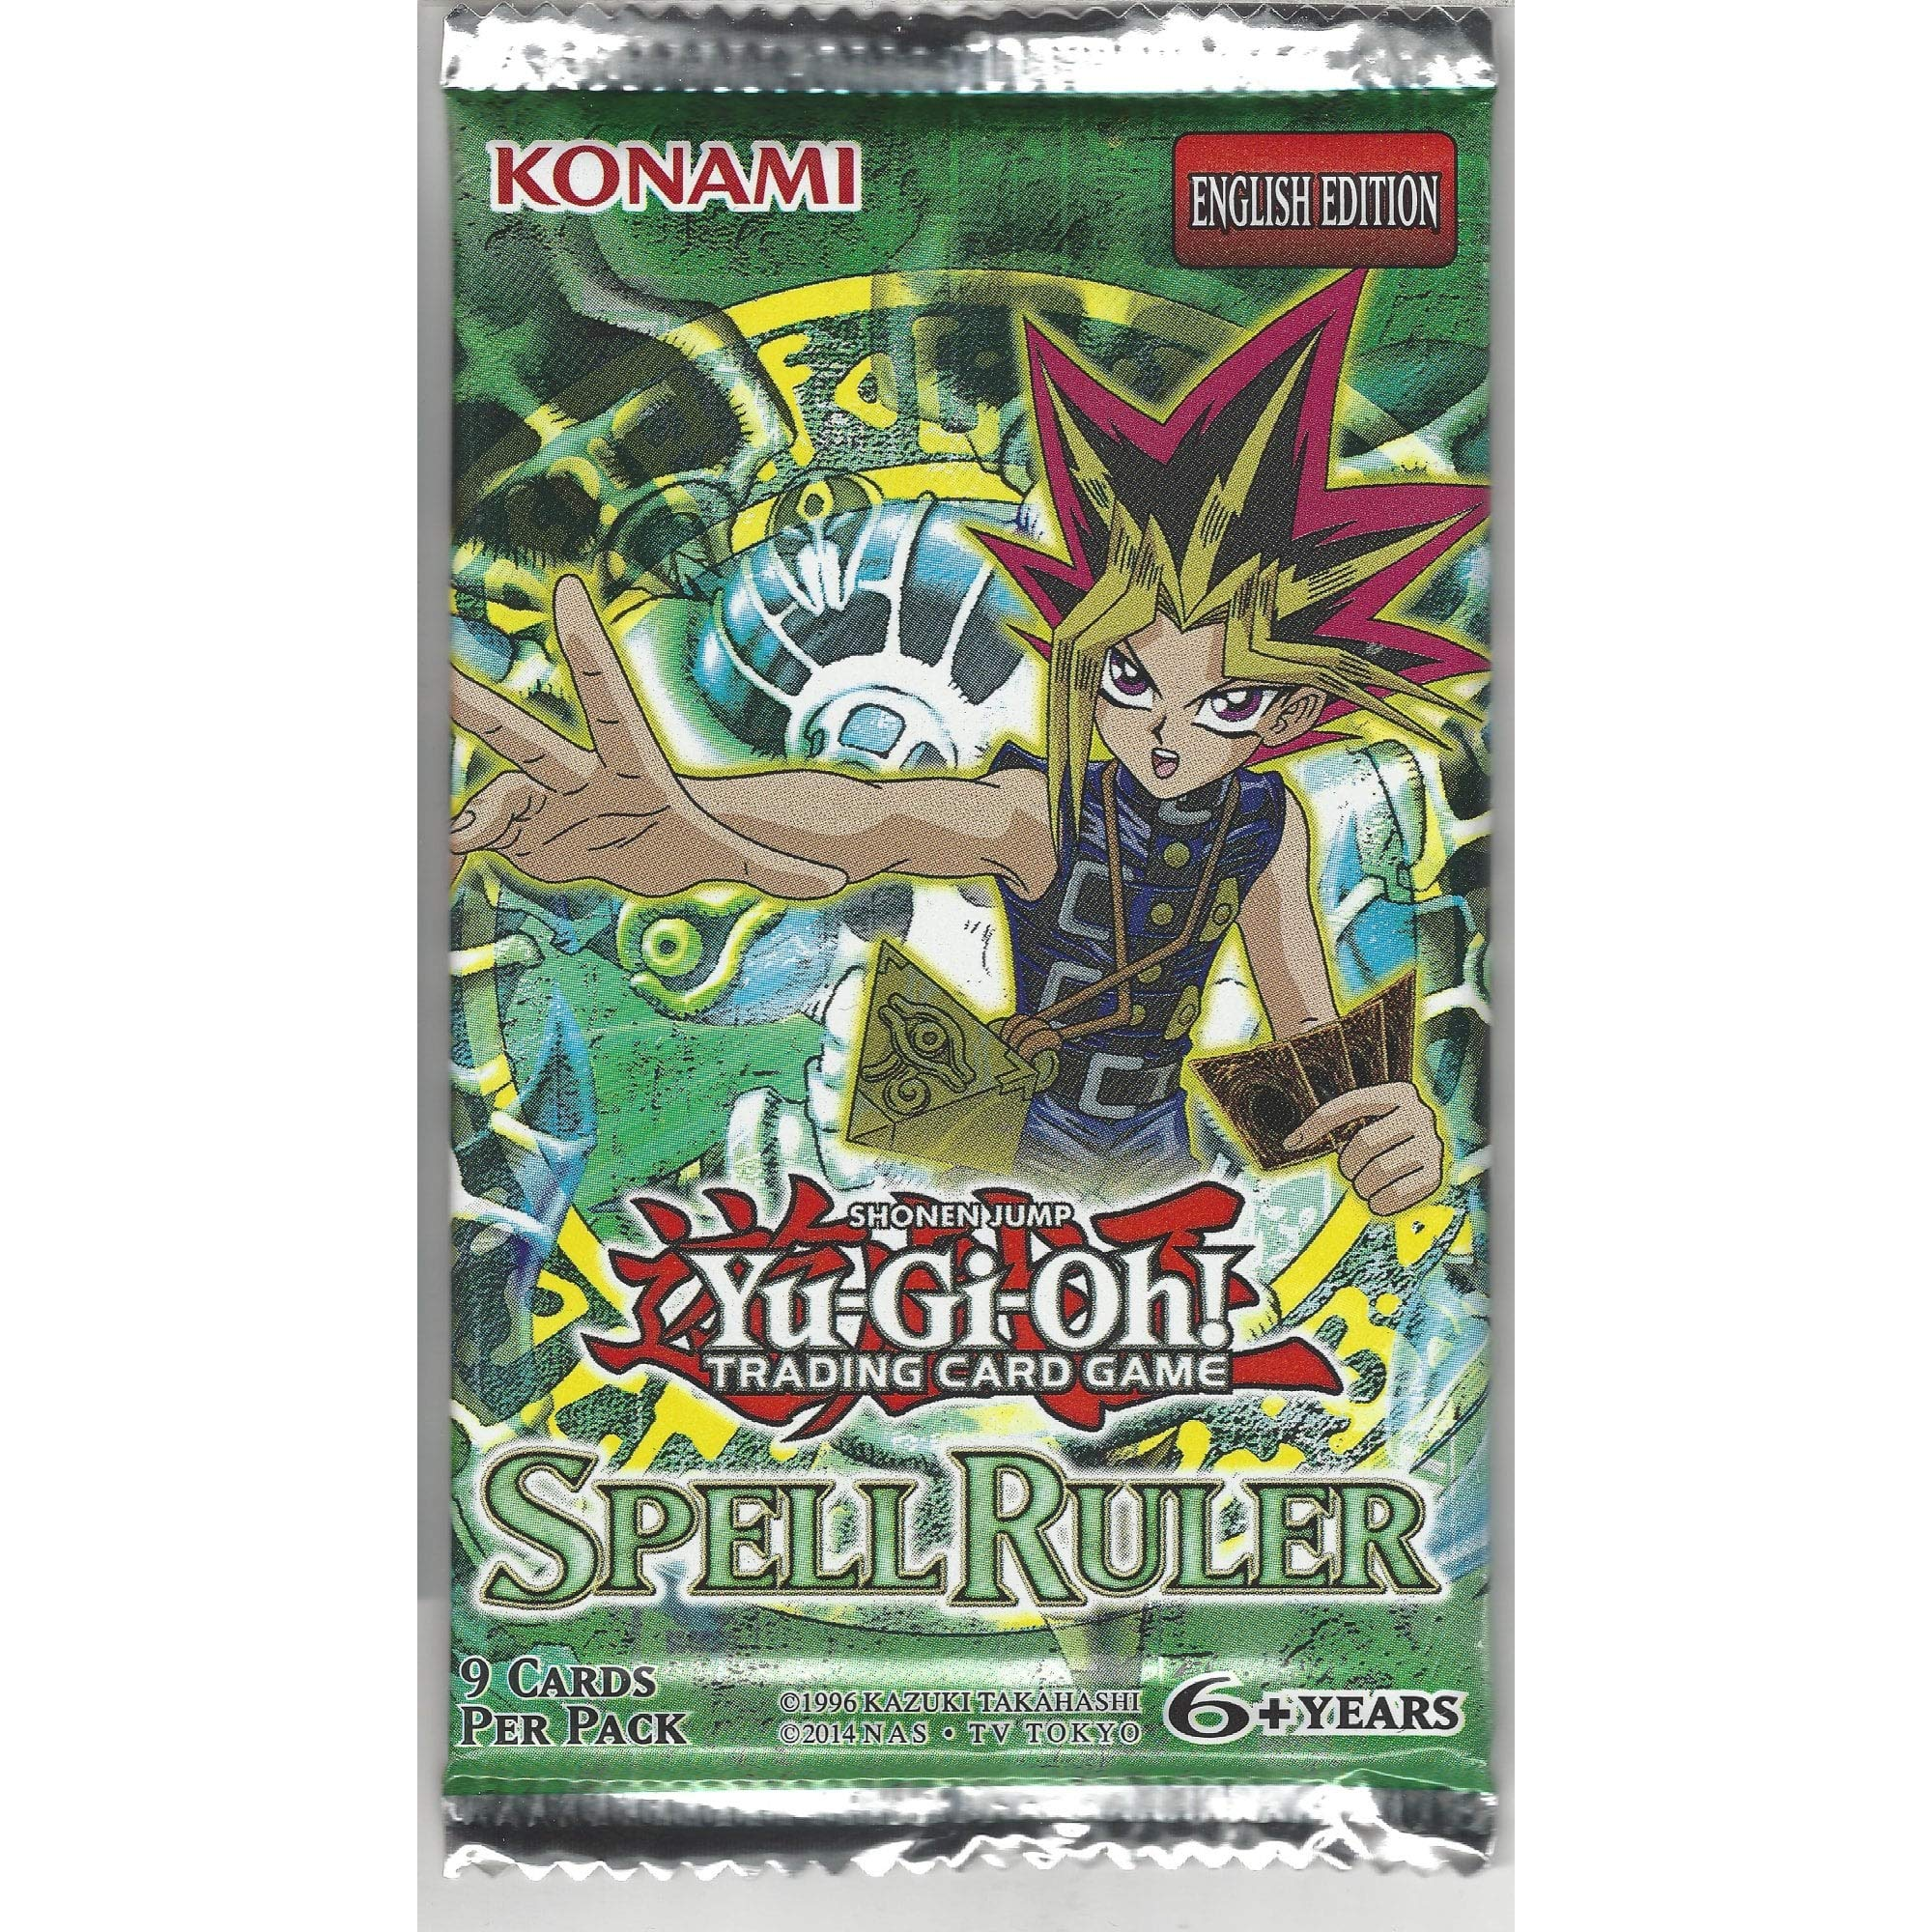 YuGiOh Magic Ruler Spell Ruler Booster Pack [Toy]: Amazon.es: Juguetes y juegos